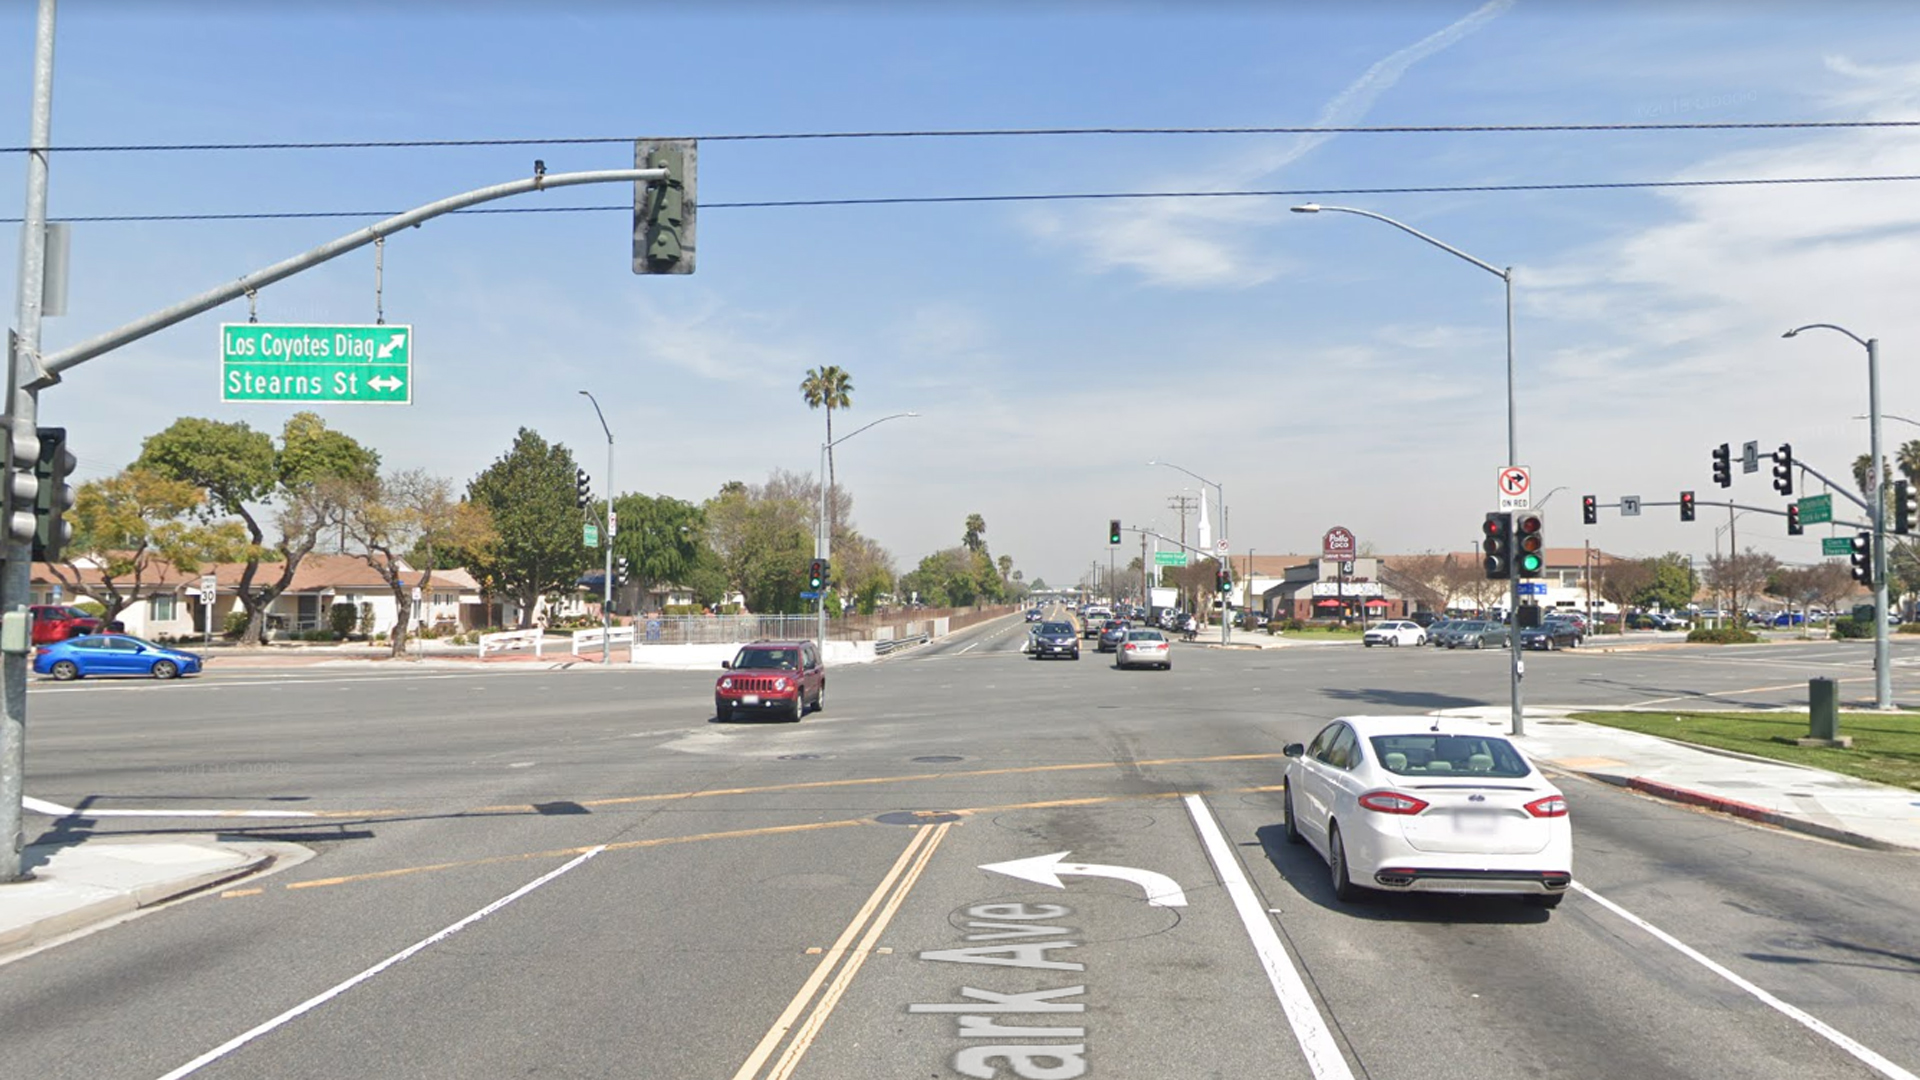 The intersection of Los Coyotes Diagonal and Stearns Street in Long Beach, as viewed in a Google Street View image.